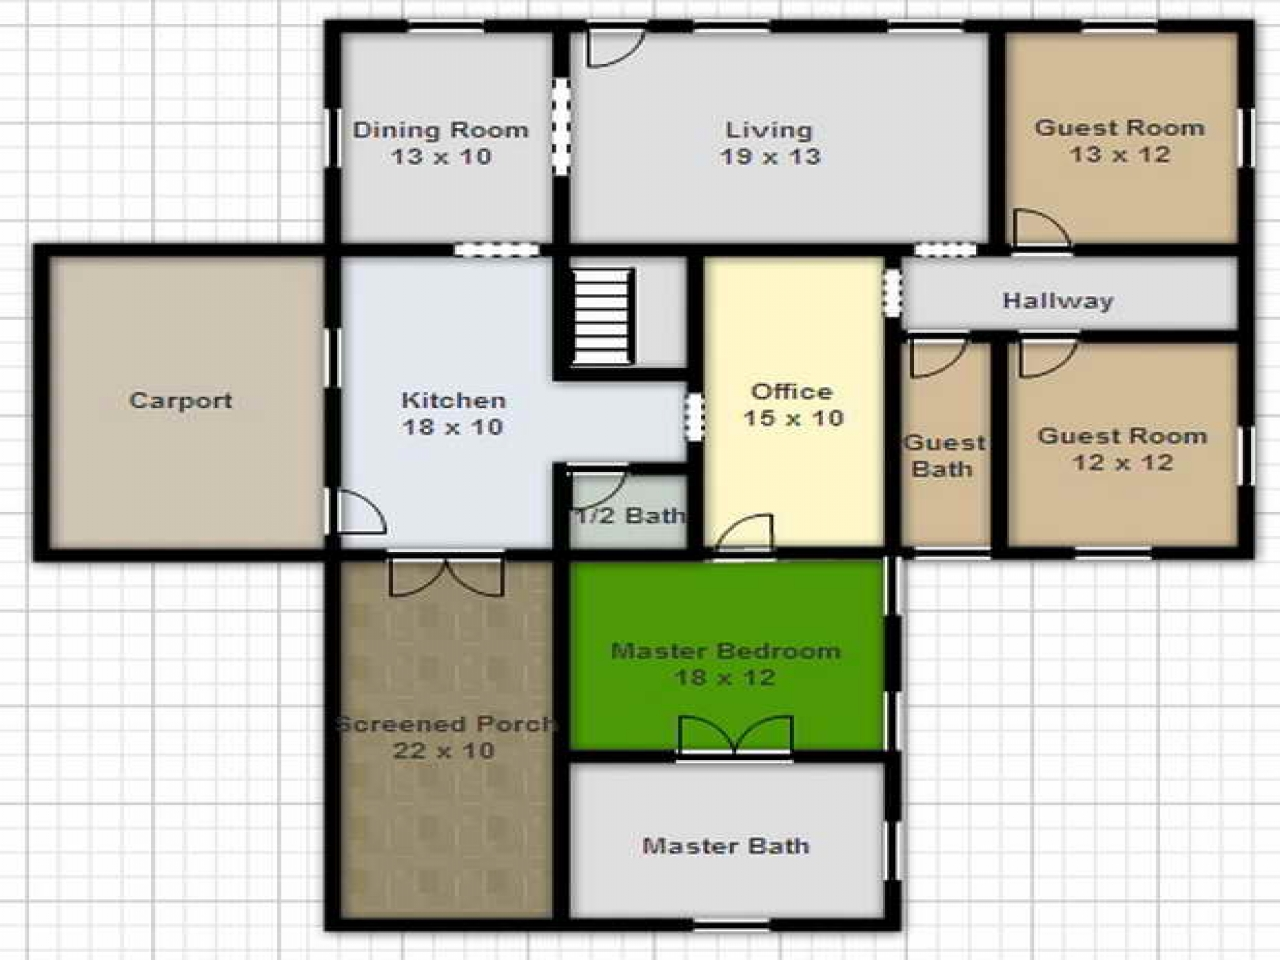 Free online dreamhouse design free online house design for Customized house plans online free